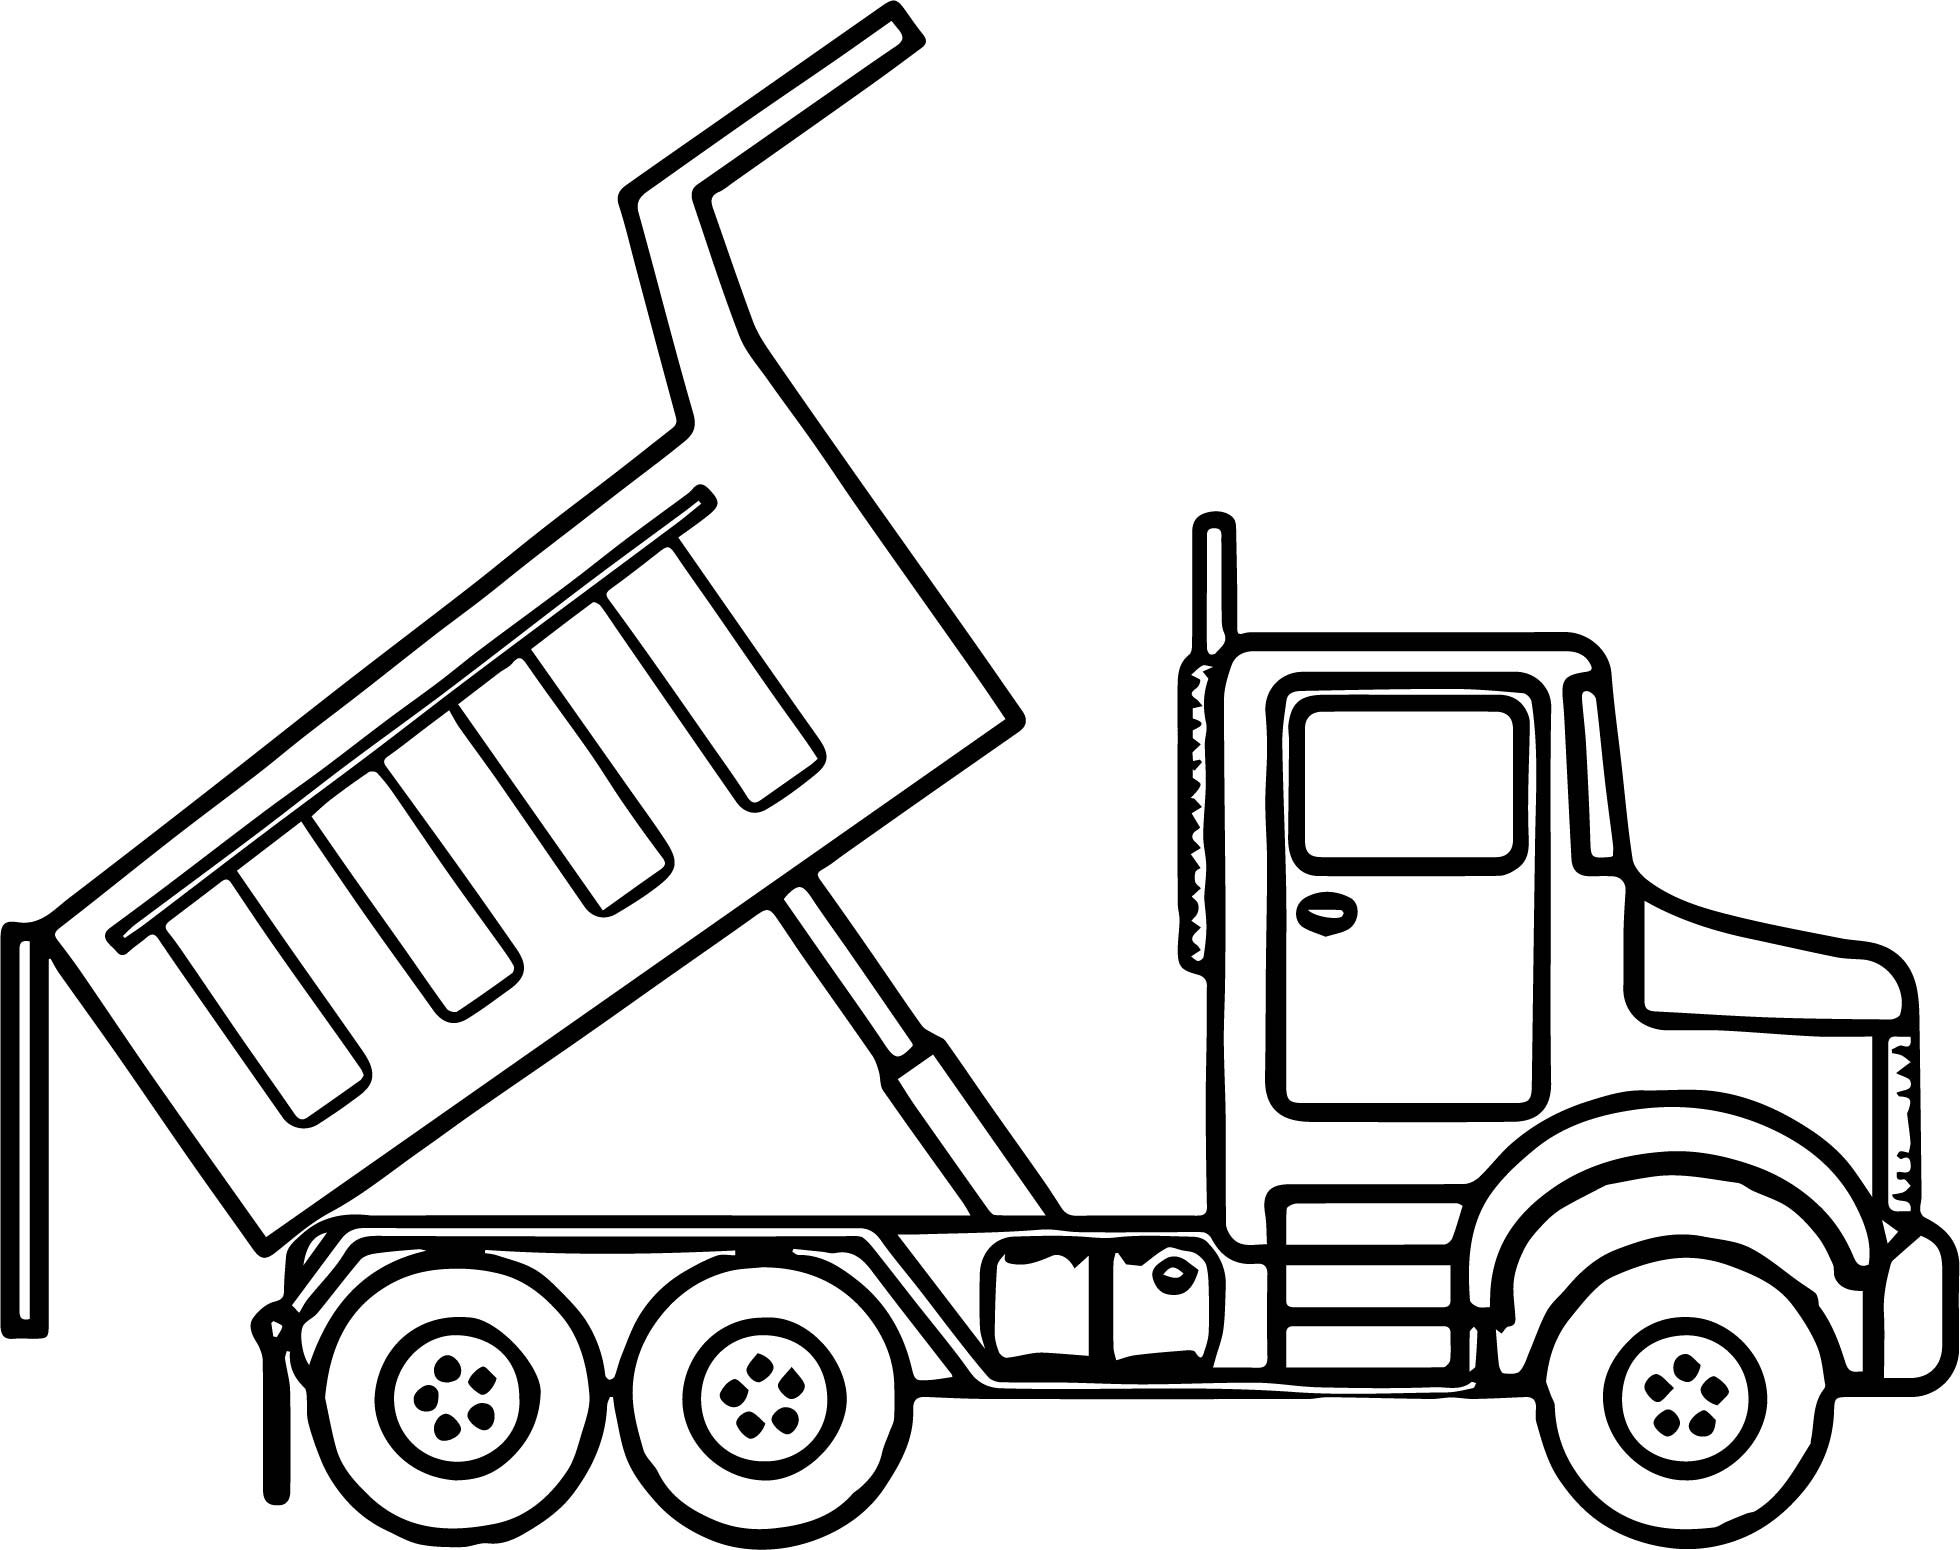 25+ Inspiration Image of Dump Truck Coloring Pages